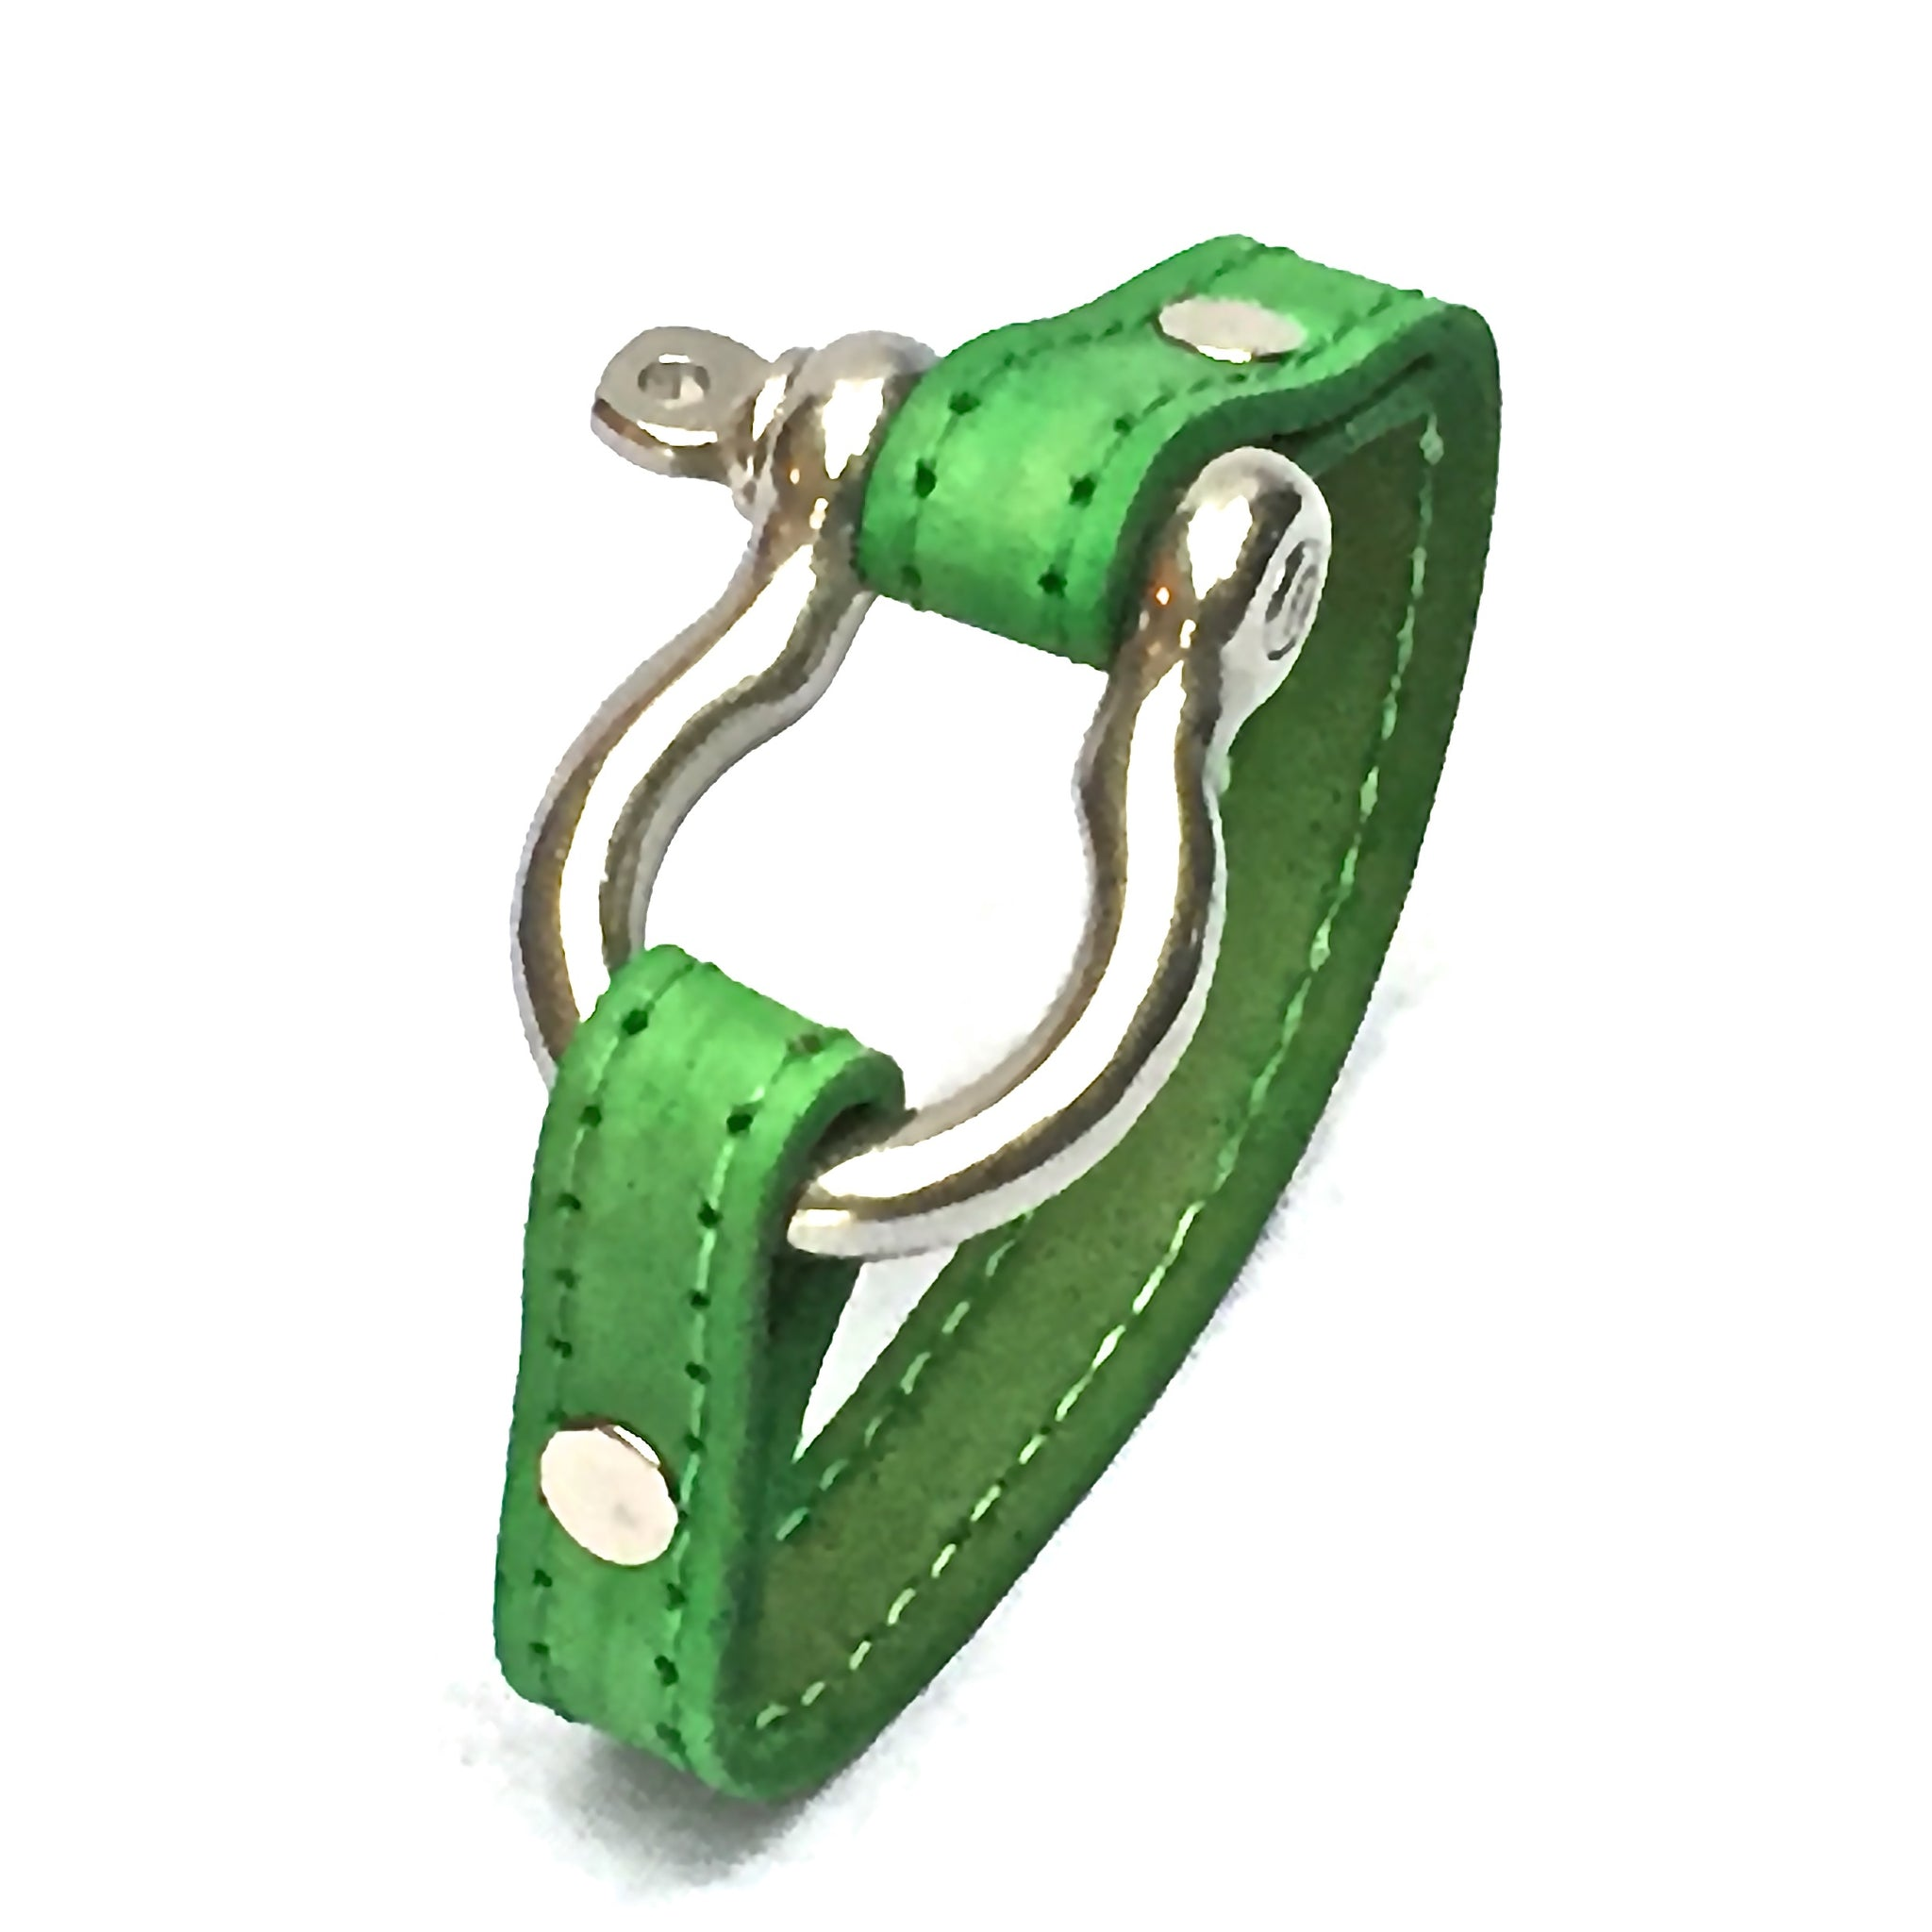 STITCHED LEATHER AND STAINLESS STEEL SHACKLE by nyet jewelry.